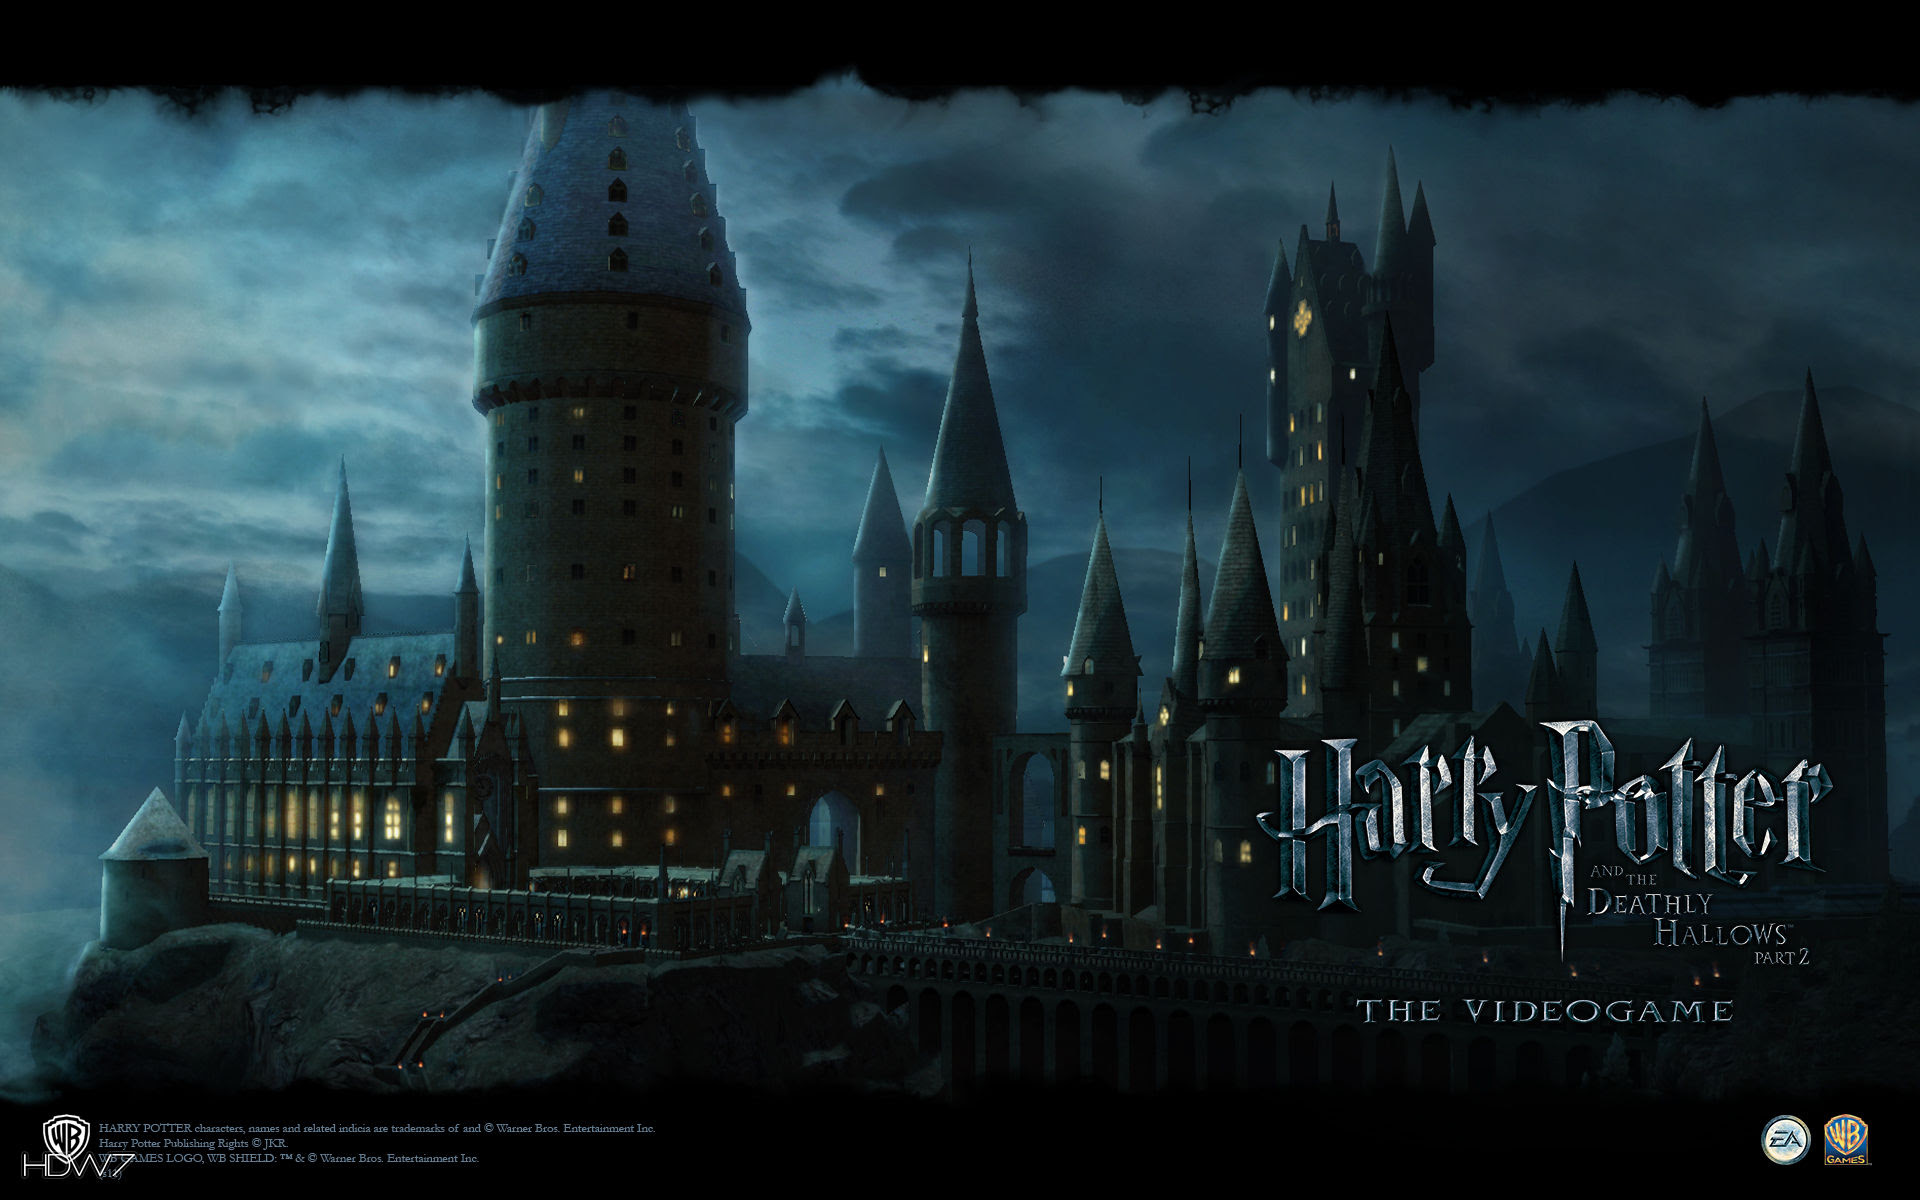 Harry Potter And The Deathly Hallows Hogwarts Widescreen Wallpaper